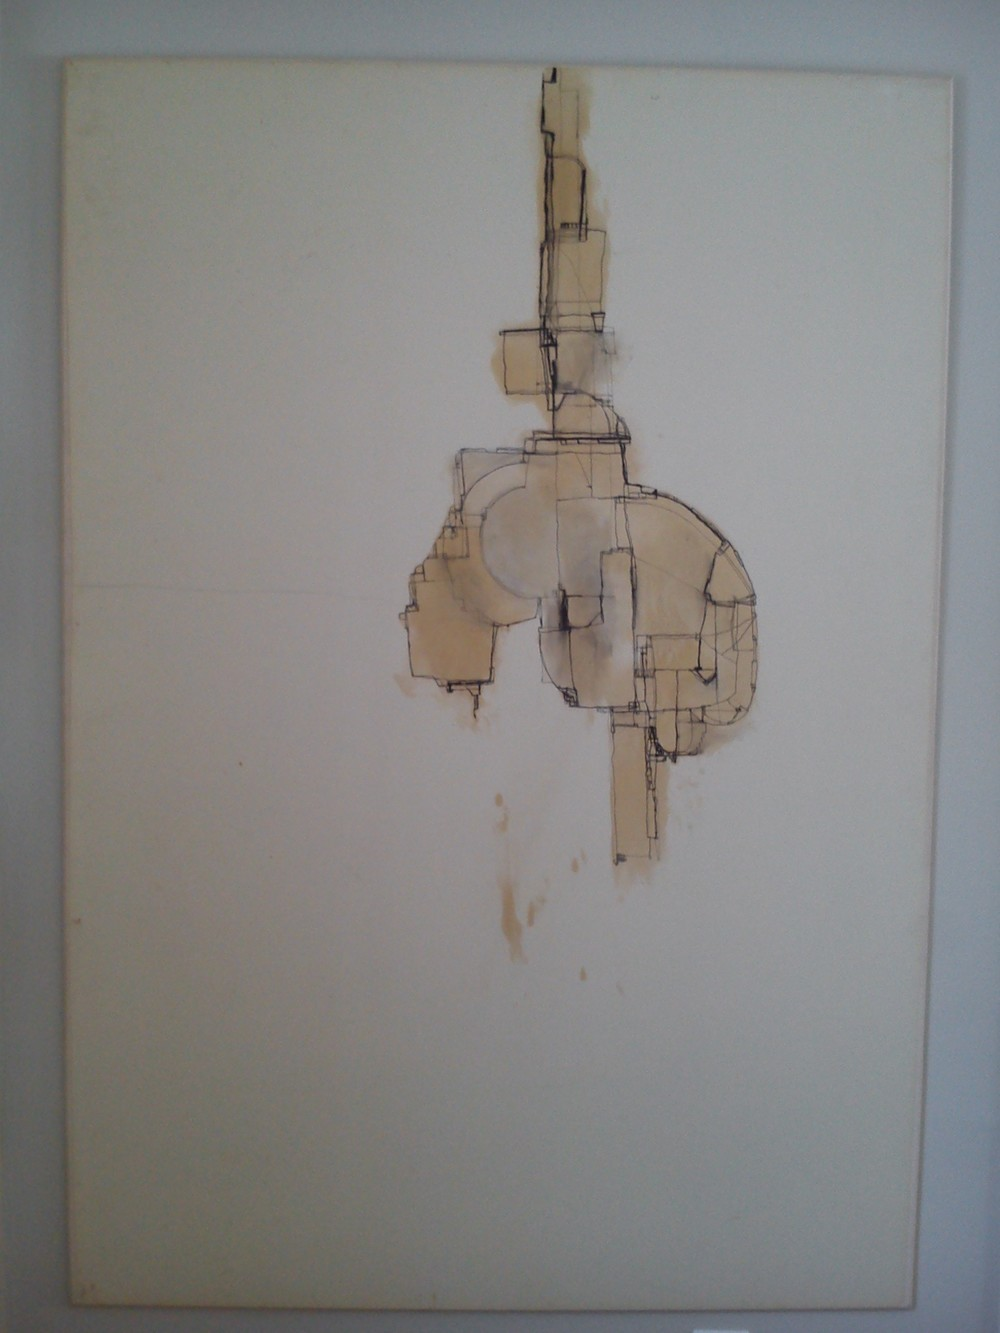 artwork # 9, pencil and linseed oil on paper.jpg